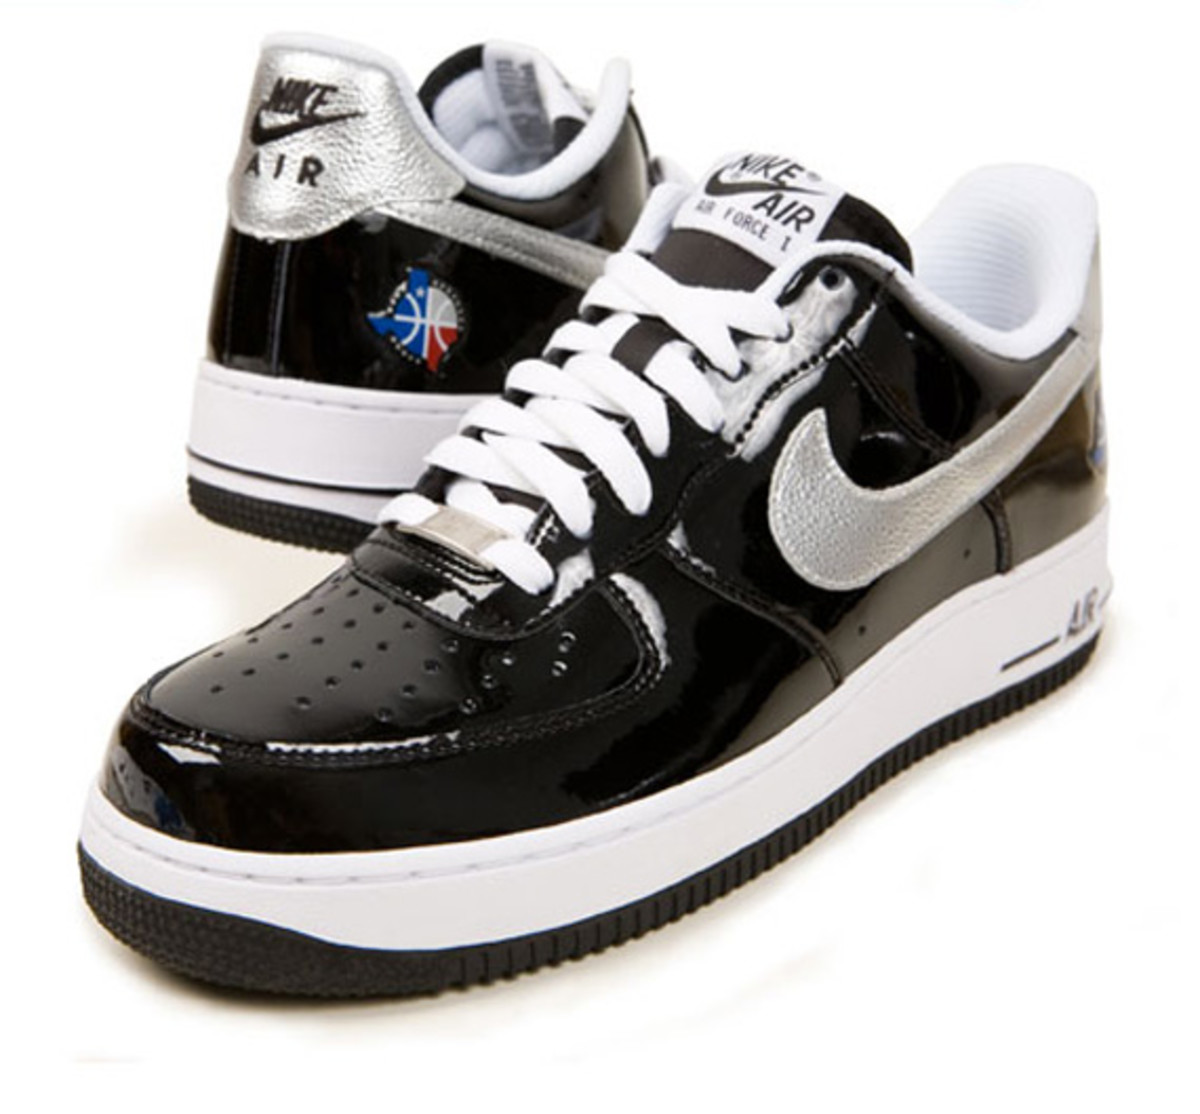 nike-af1-all-star-collection-031